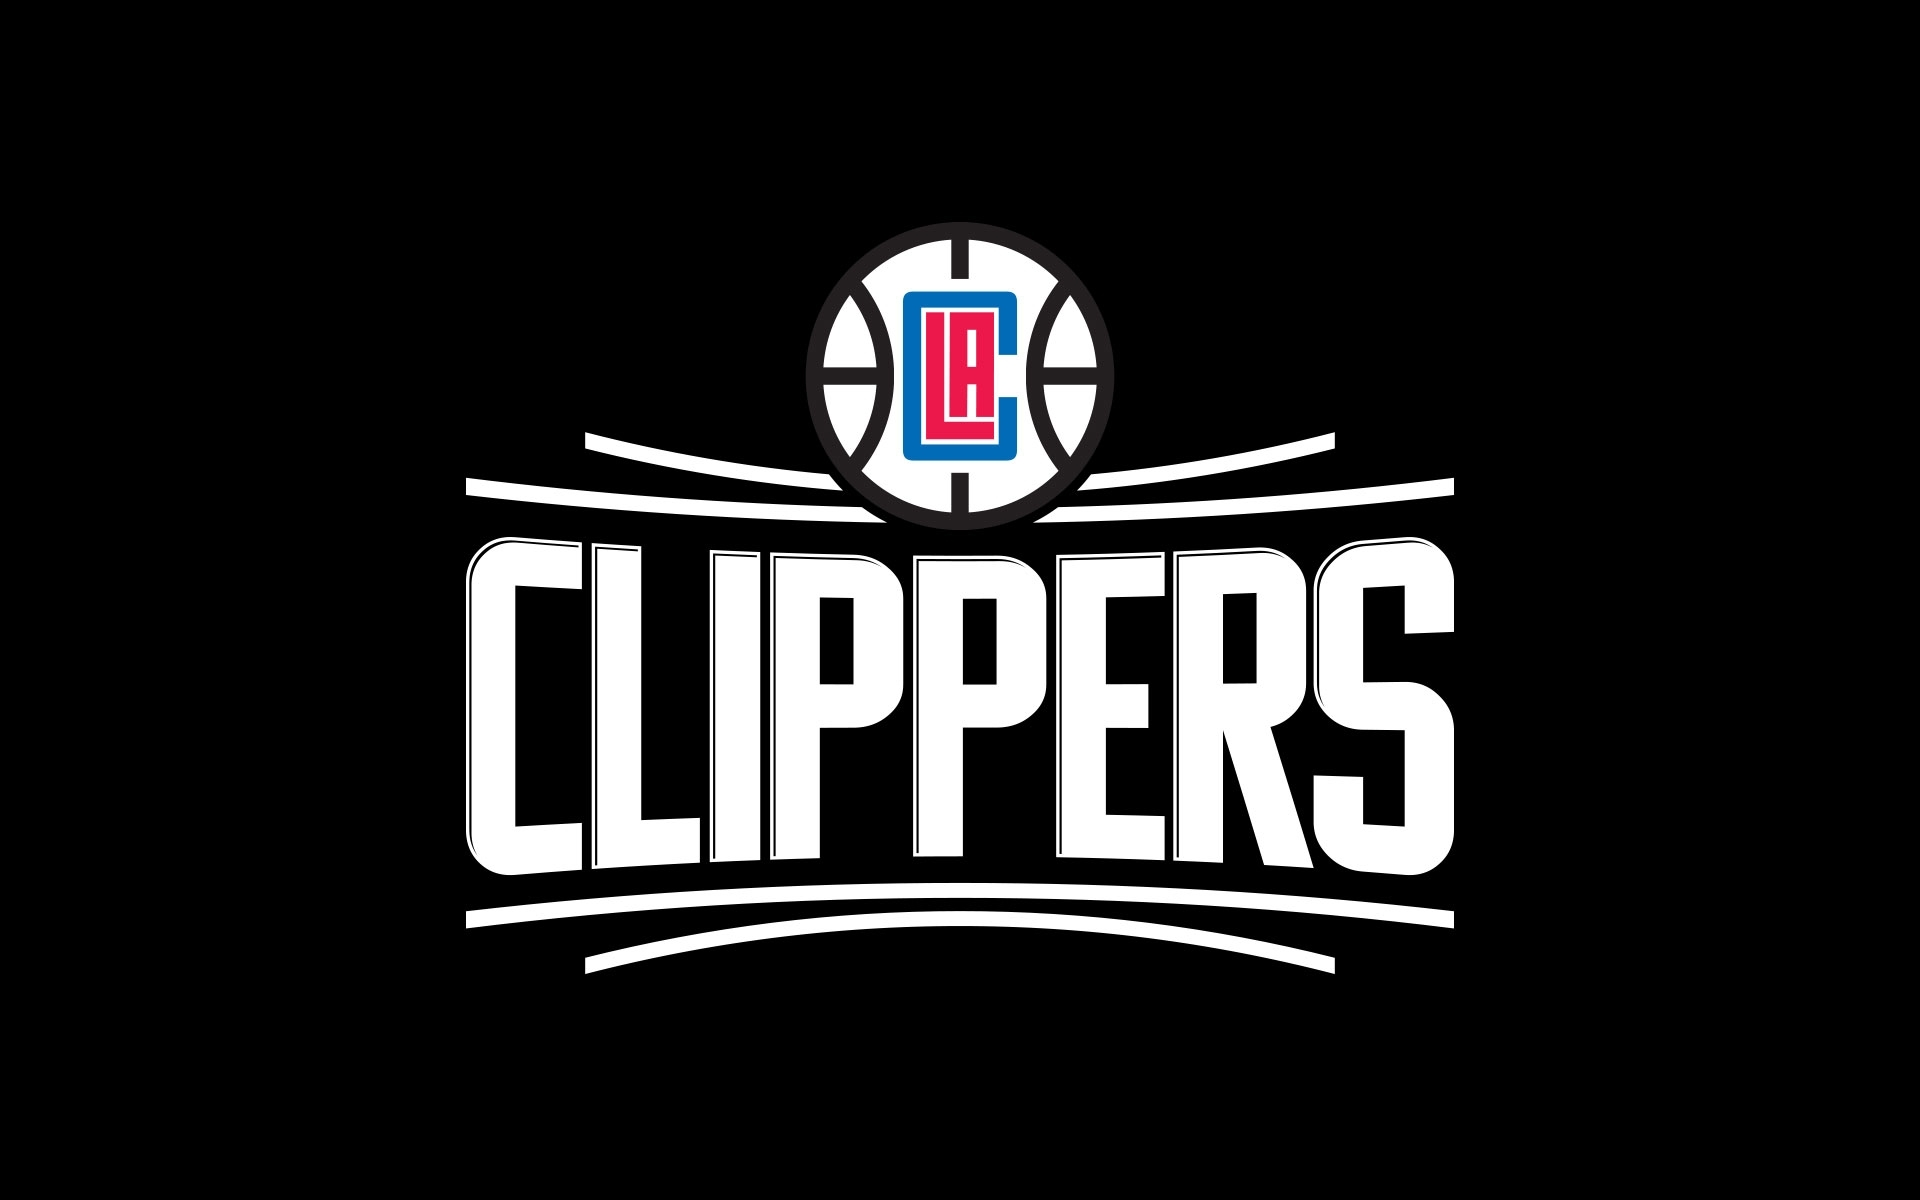 los angeles clippers new logo -logo brands for free hd 3d